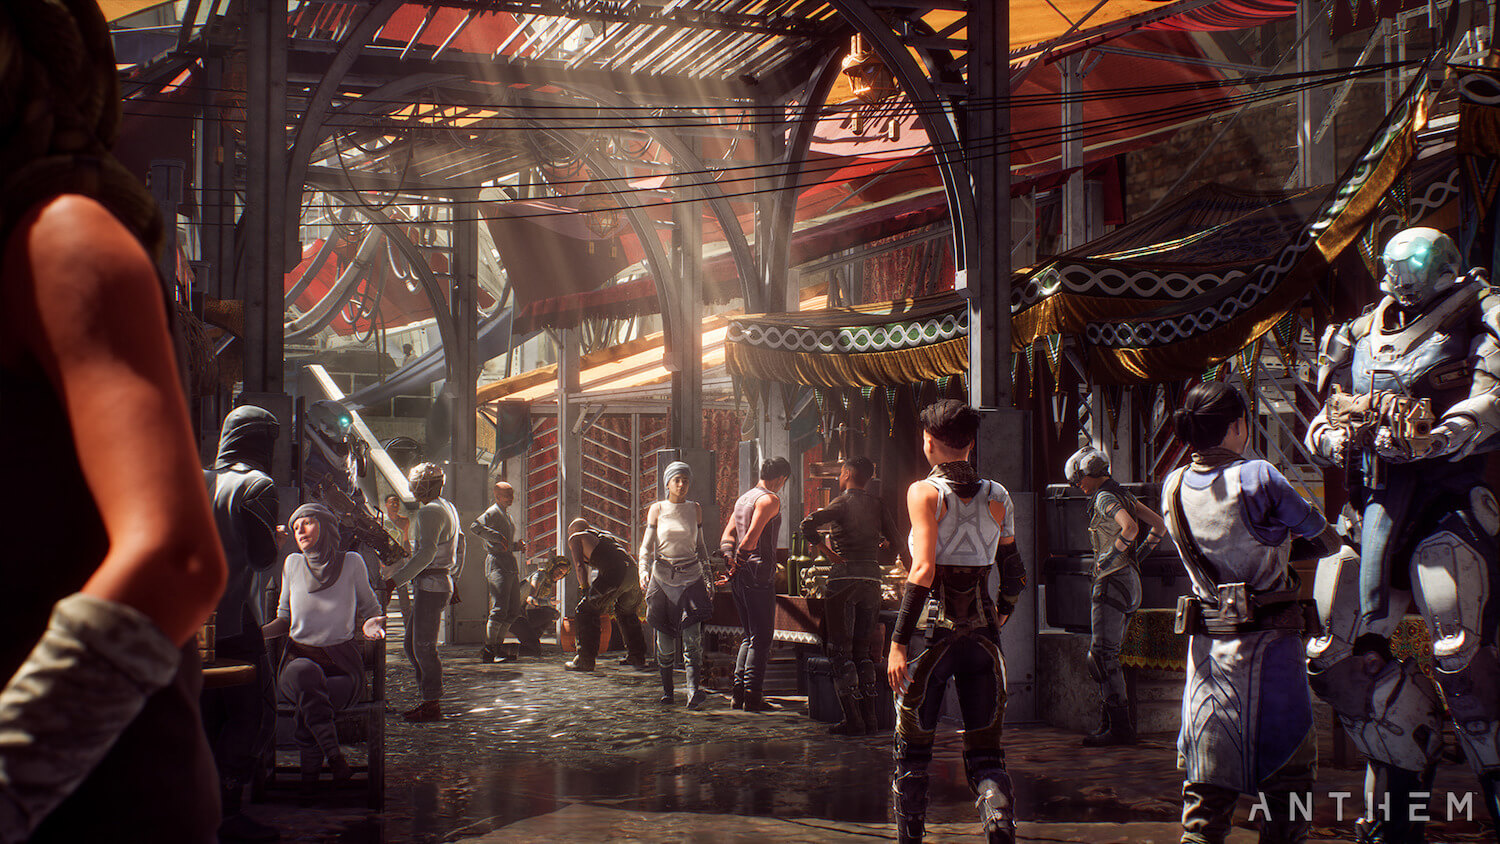 Official PC requirements for Anthem revealed, 16GB of RAM and more than 50GB of free HDD space